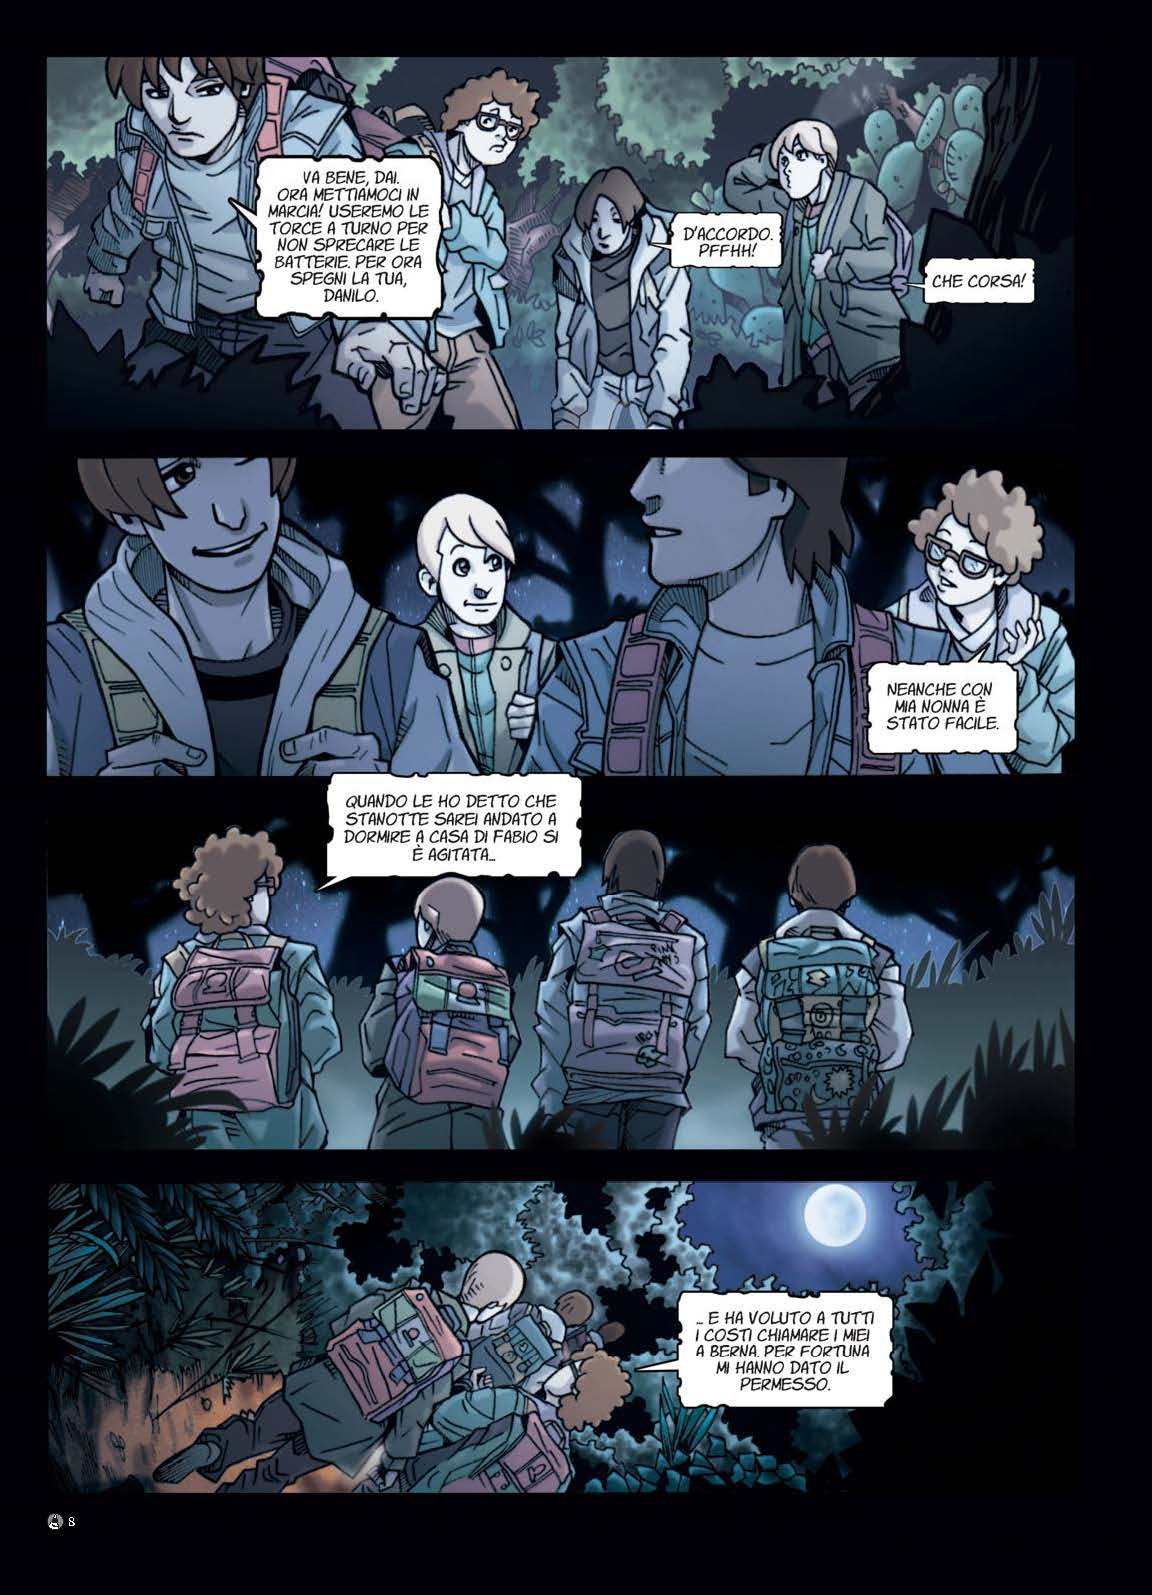 Pages-from-sulla_collina_completo_LR_Page_4_Anteprime